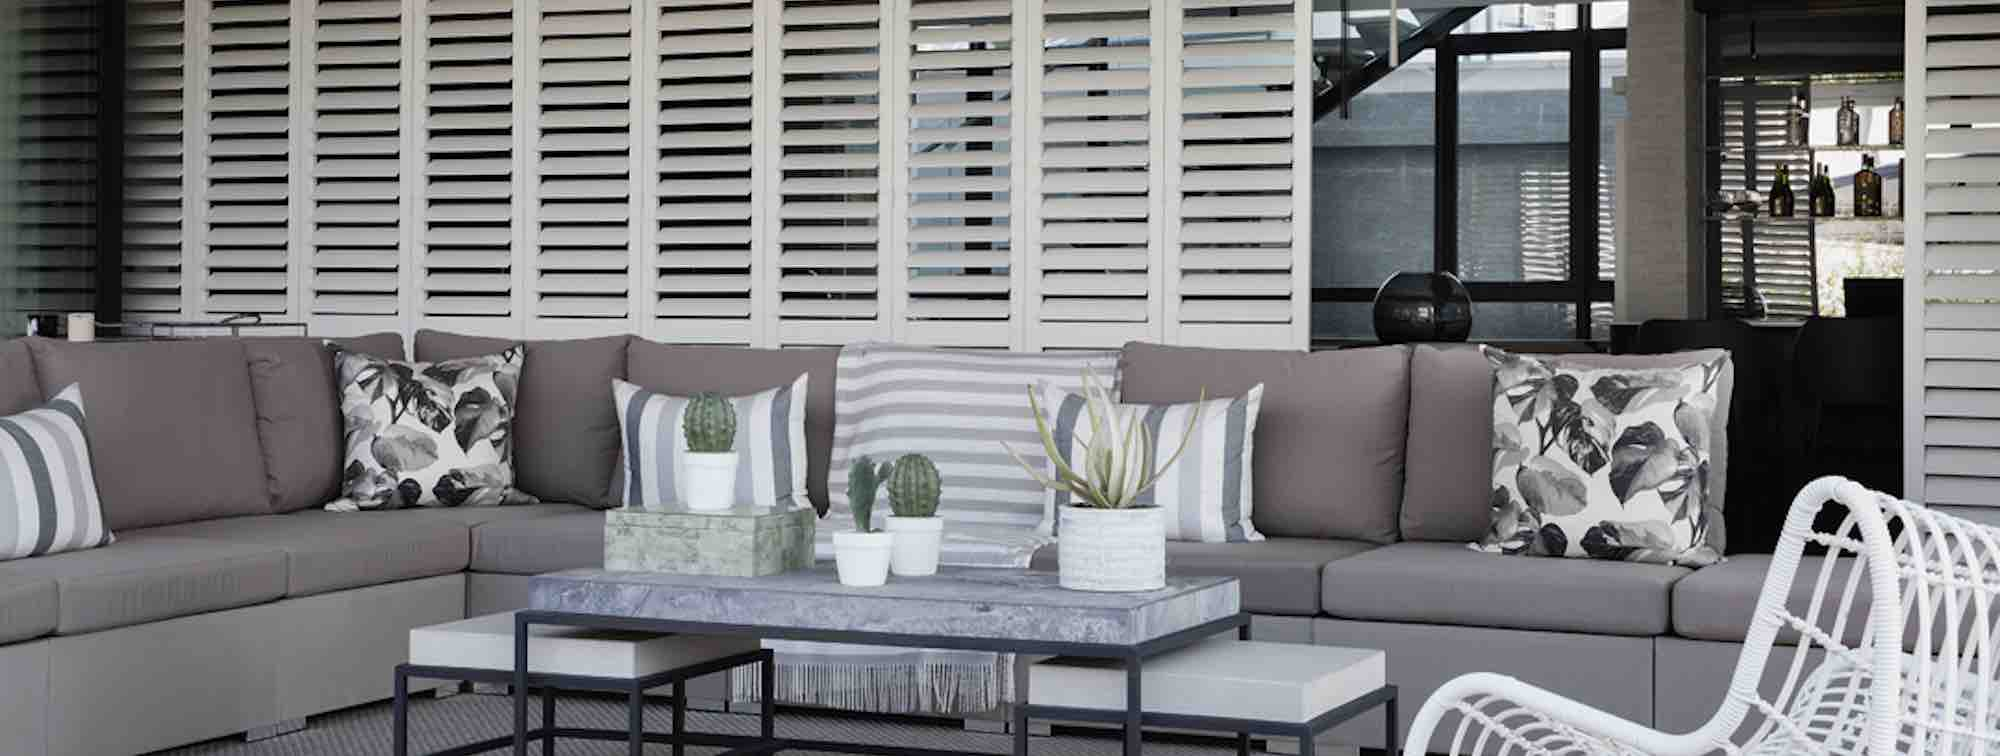 What are Security Shutters and the Advantages of installing them?